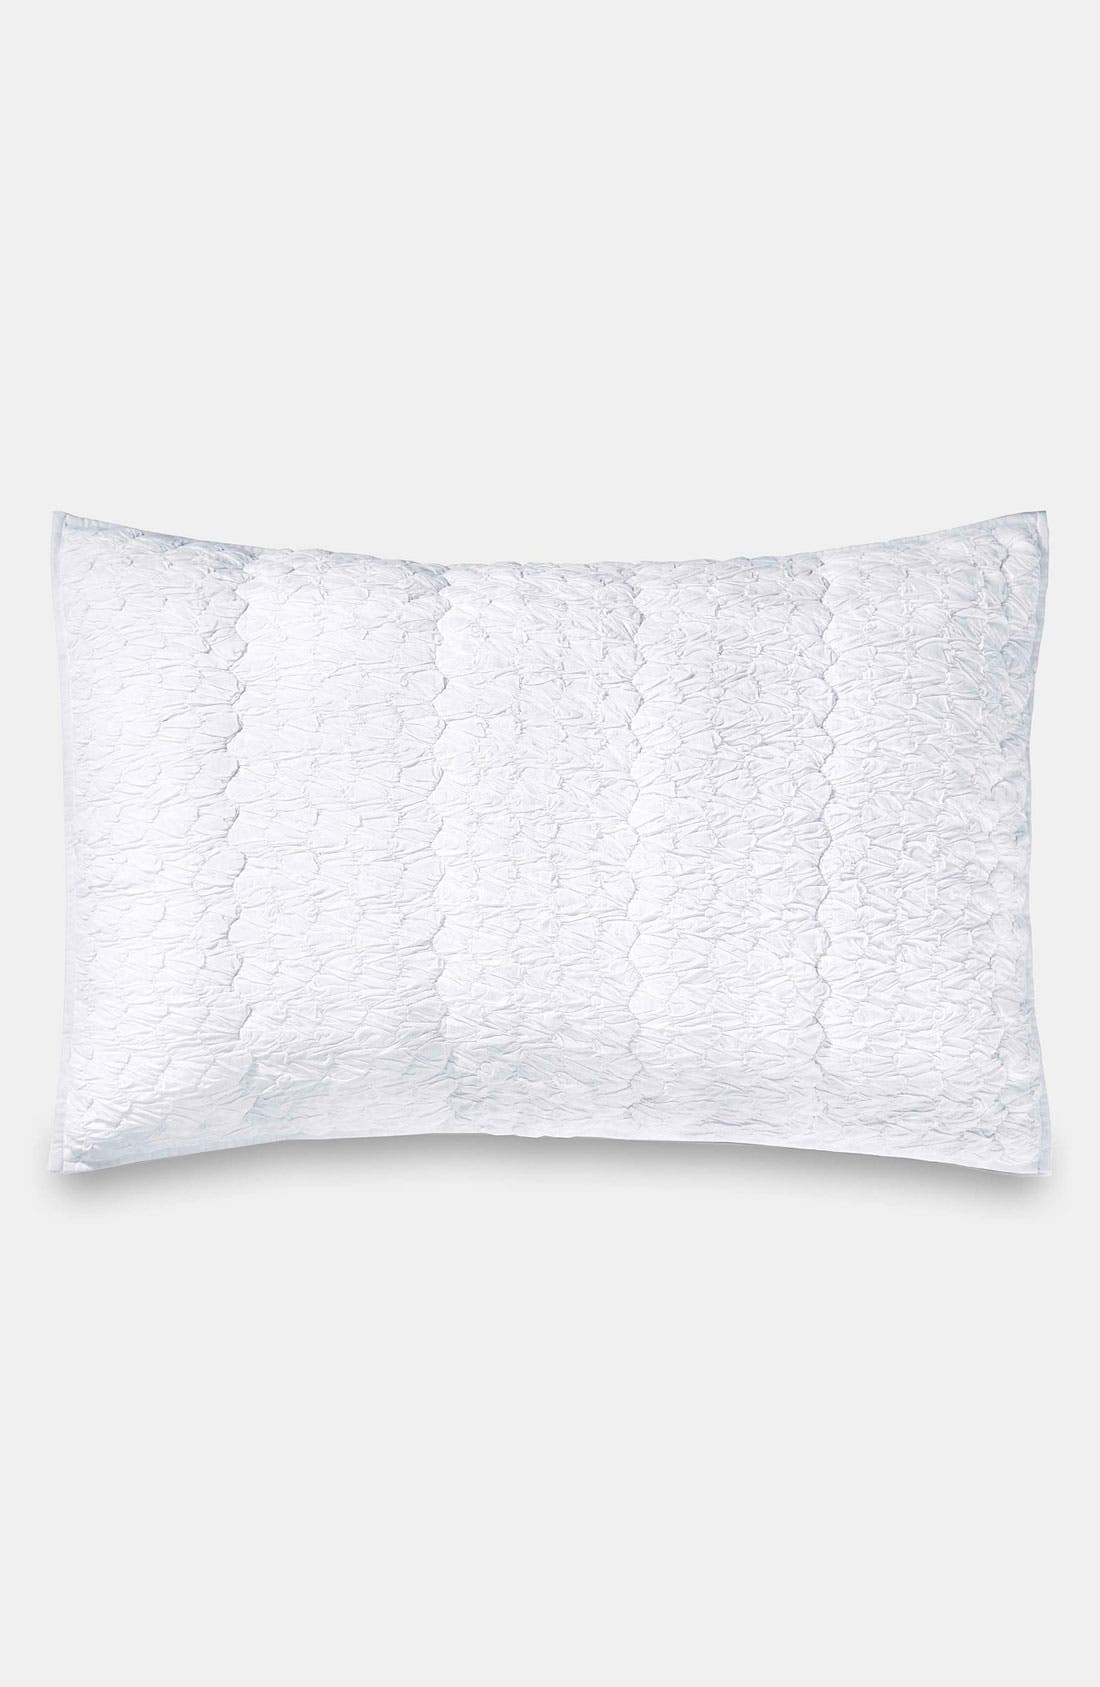 'Pure Enchantment' Pillow Sham,                         Main,                         color, 100